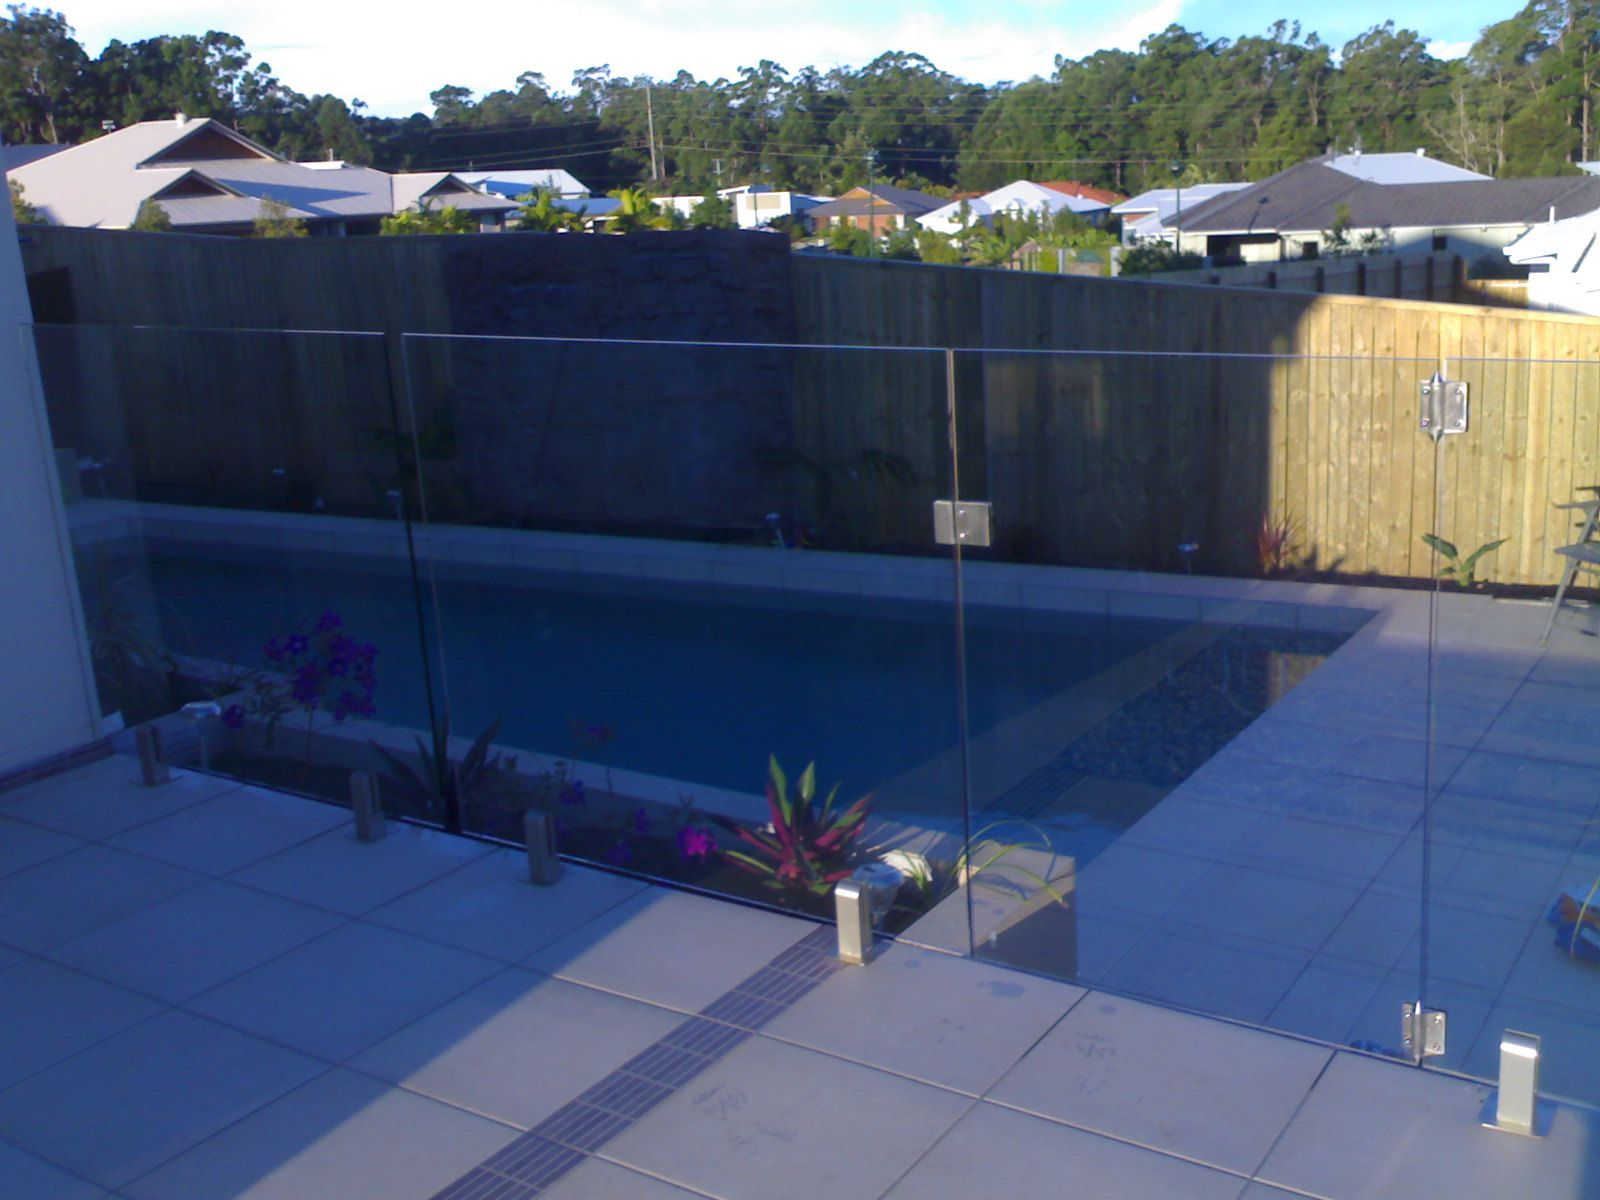 Glass Pool Fence On Sandstone Retaining Wall Google Search Glass Pool Fencing Pool Landscaping Glass Pool